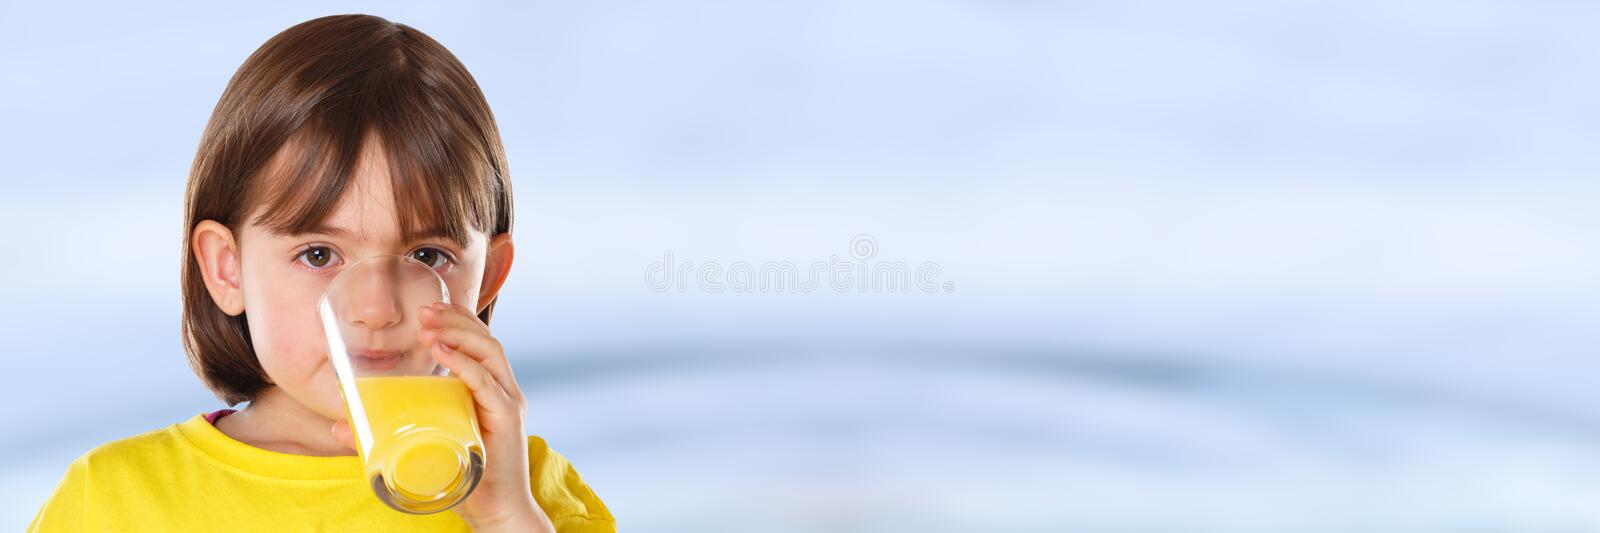 Child kid girl drinking orange juice healthy eating copyspace copy space banner stock images